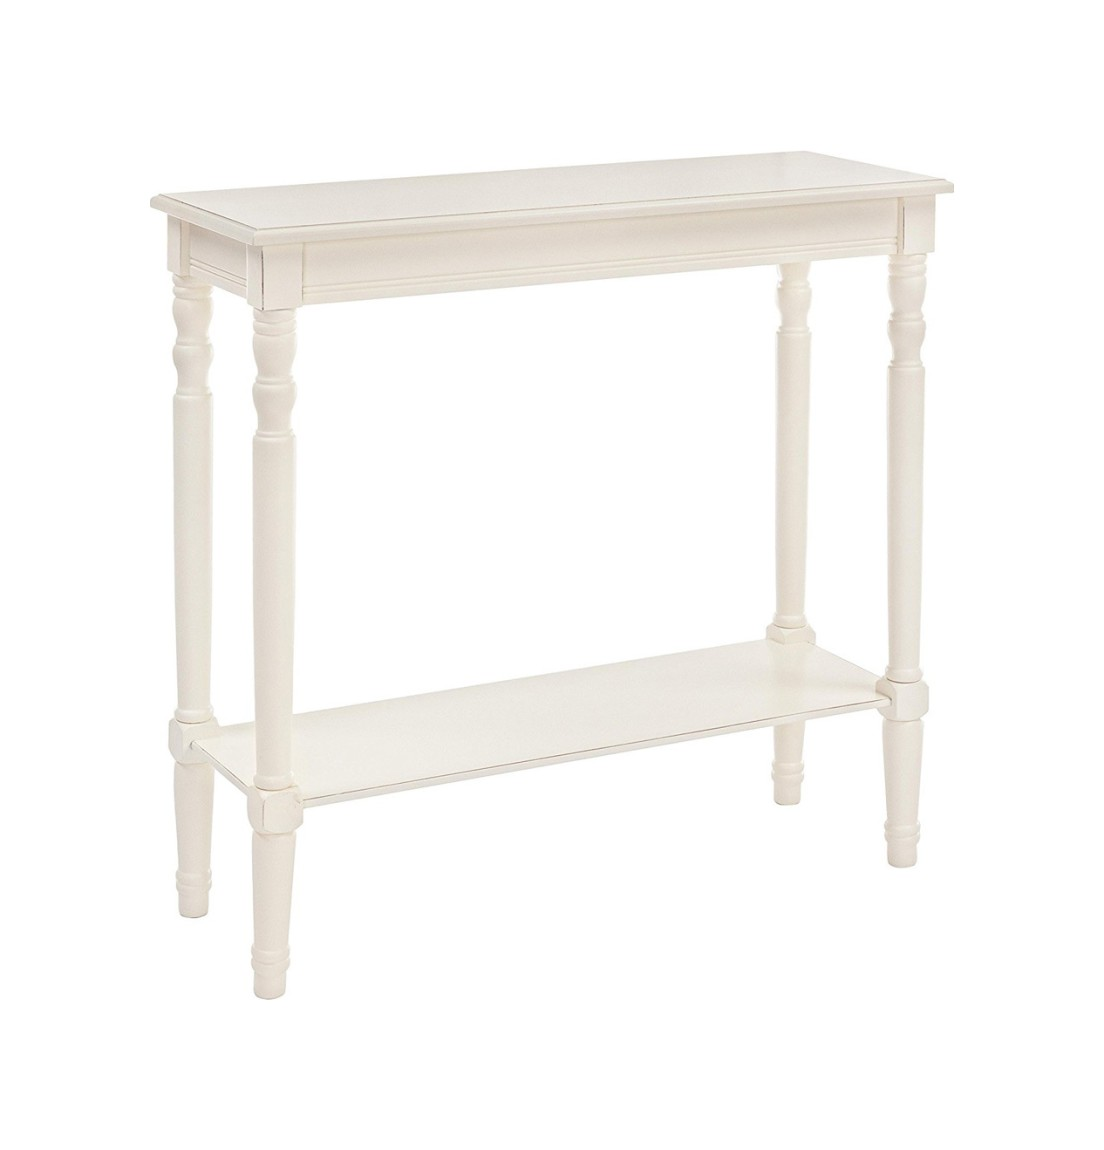 Photos 1: Bizzotto 0745374 Amabel Fixed wood console l. 81 x 30